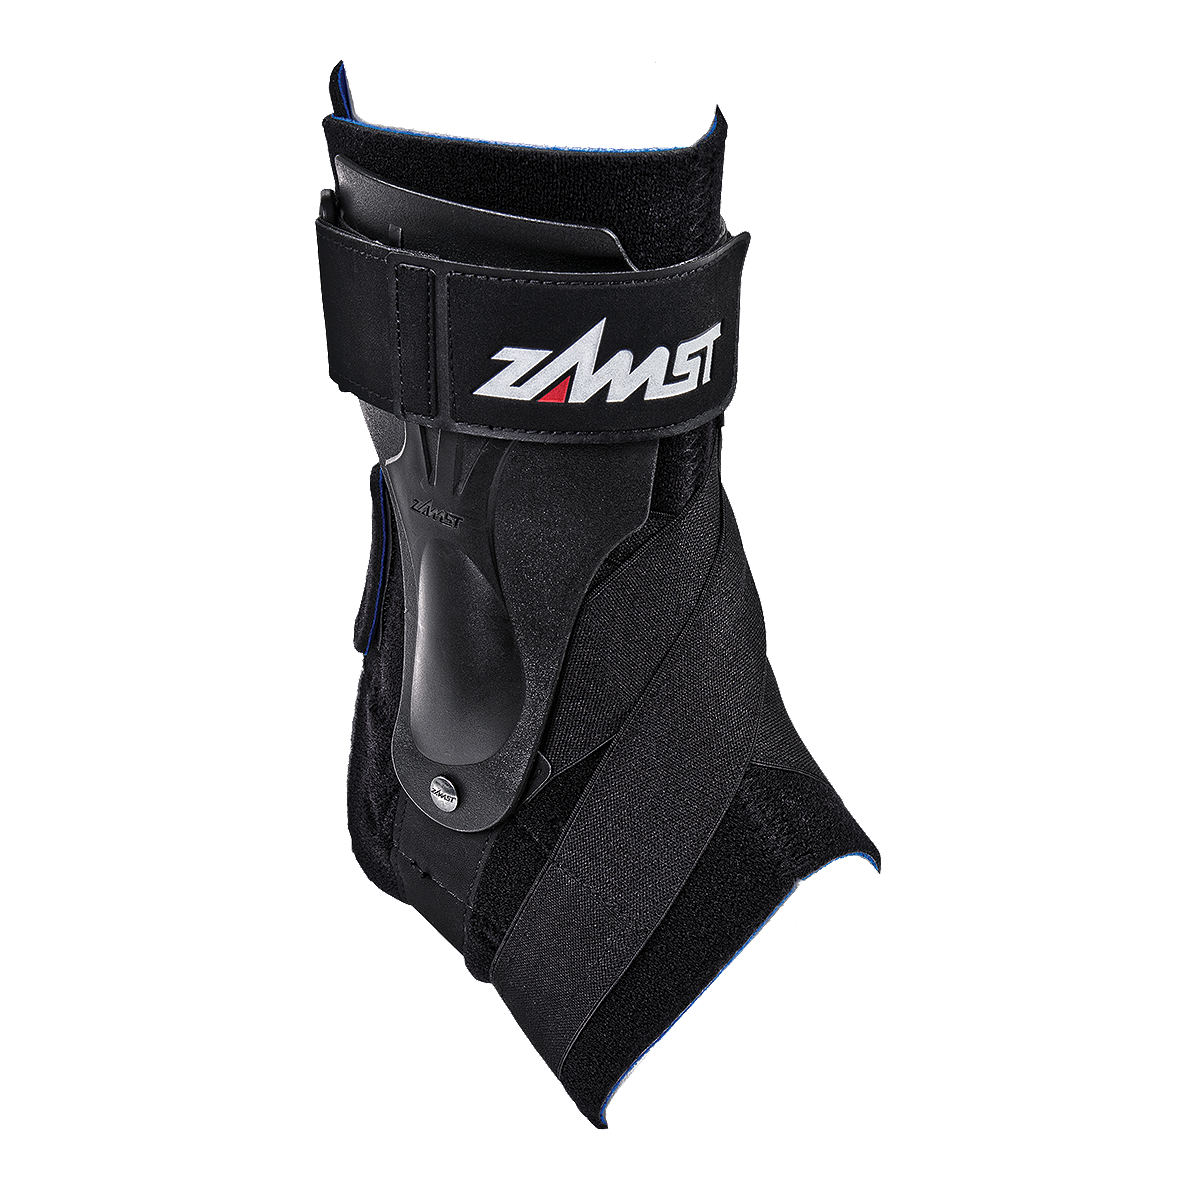 46ad50c0f Zamst A2-DX Ankle Brace - Right (Strong Support)